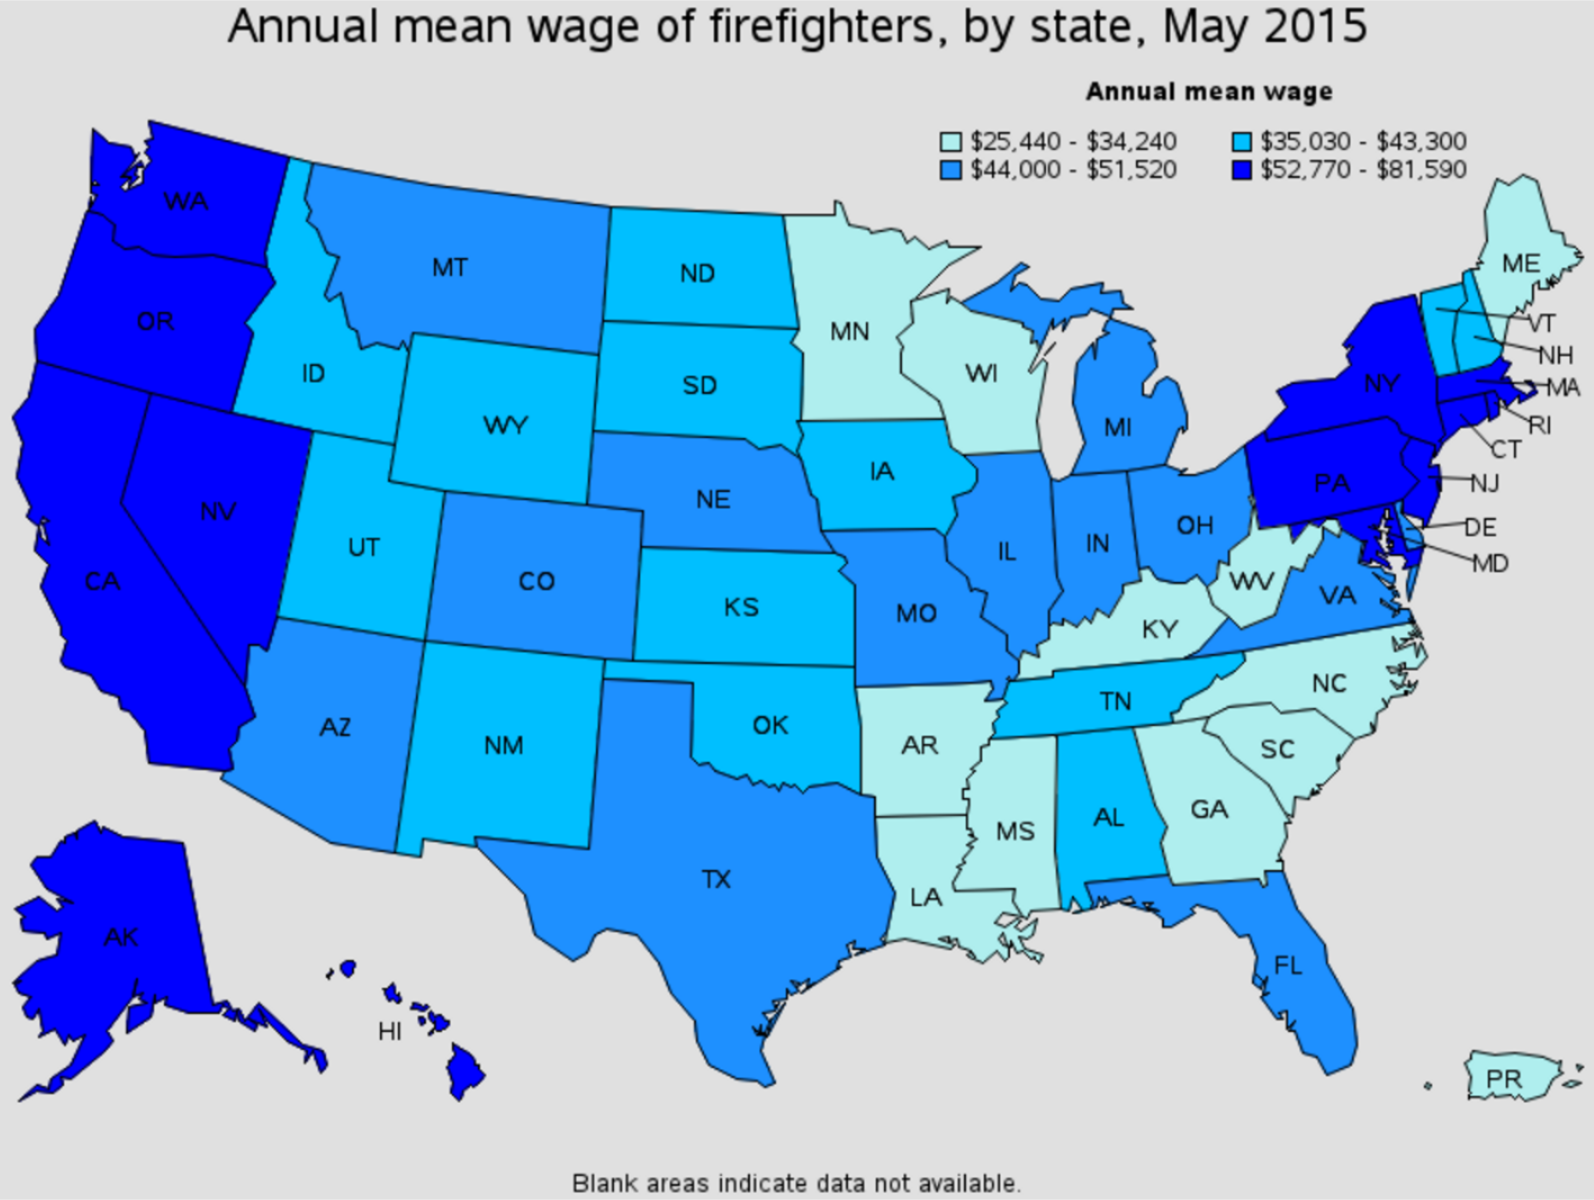 firefighter average salary by state Lowell Massachusetts